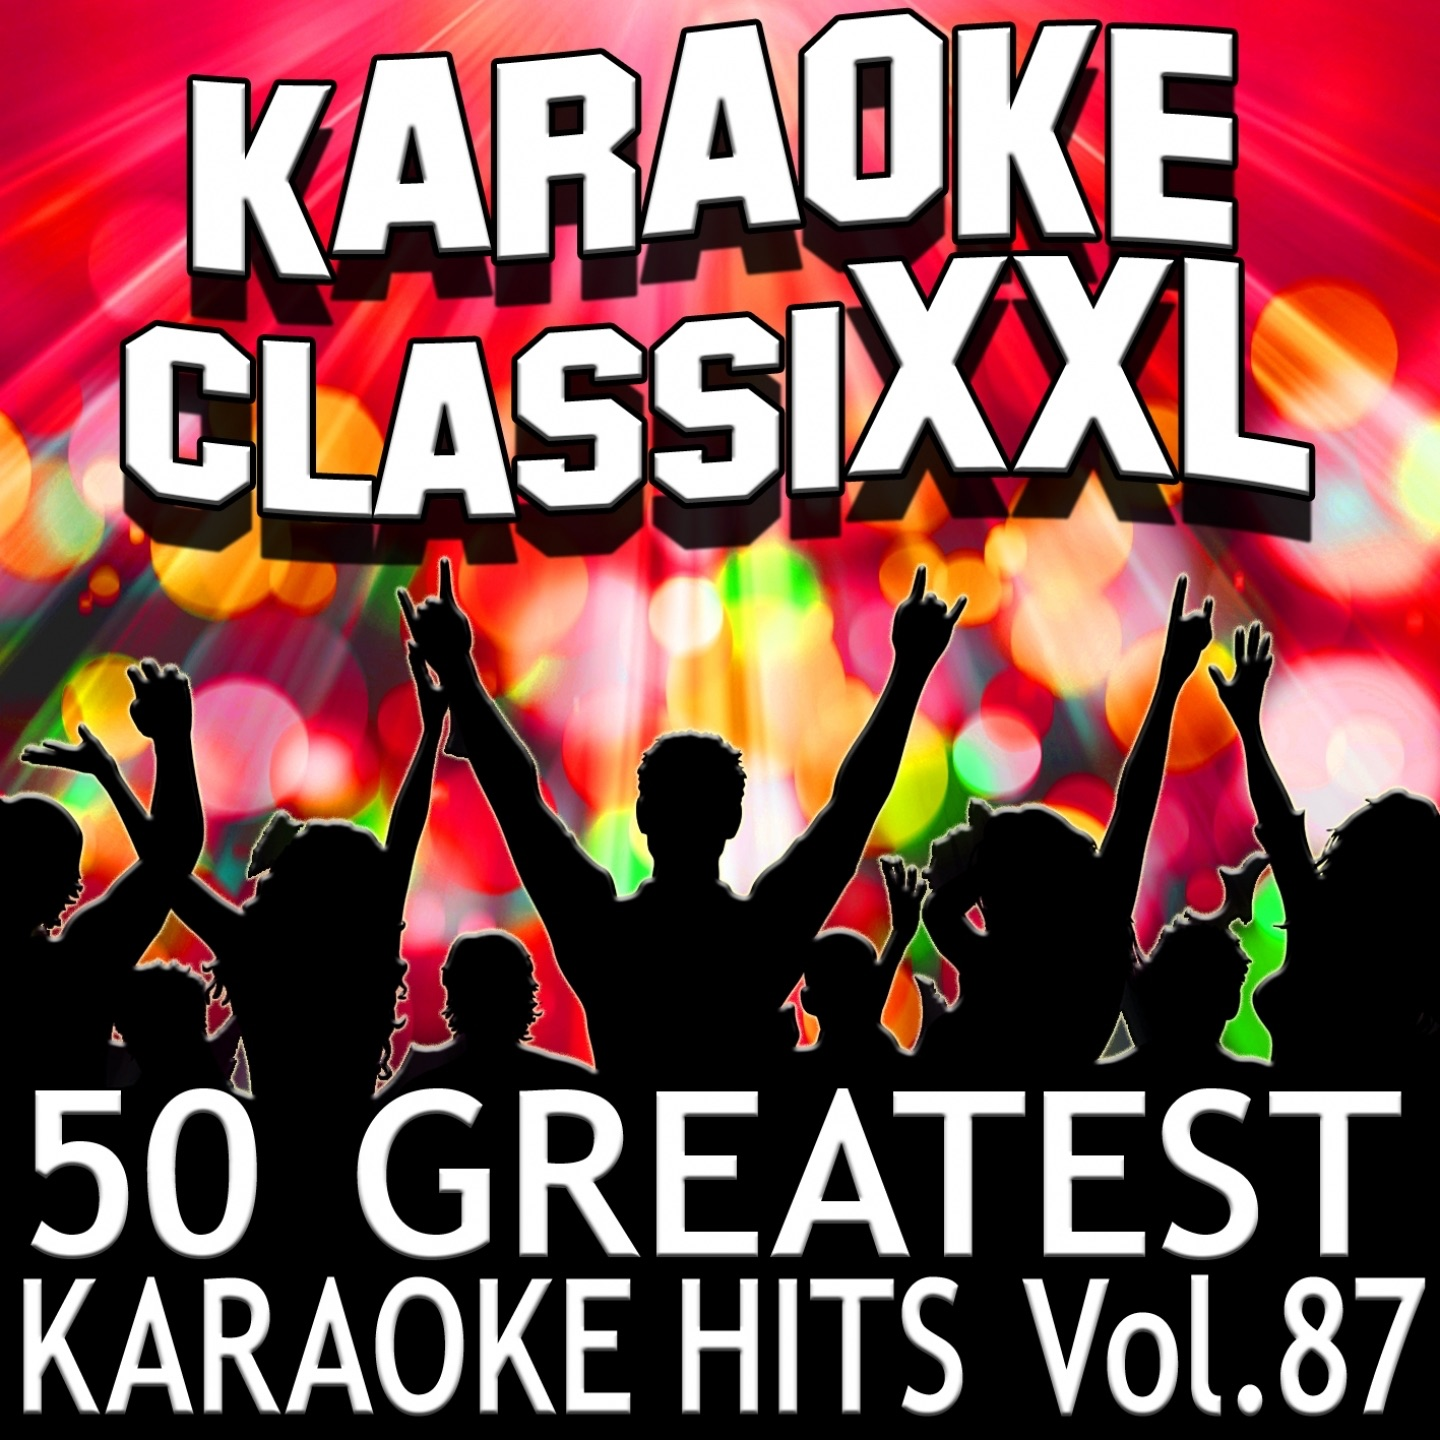 Walking the Dog (Karaoke Version) [Originally Performed By Aerosmith]